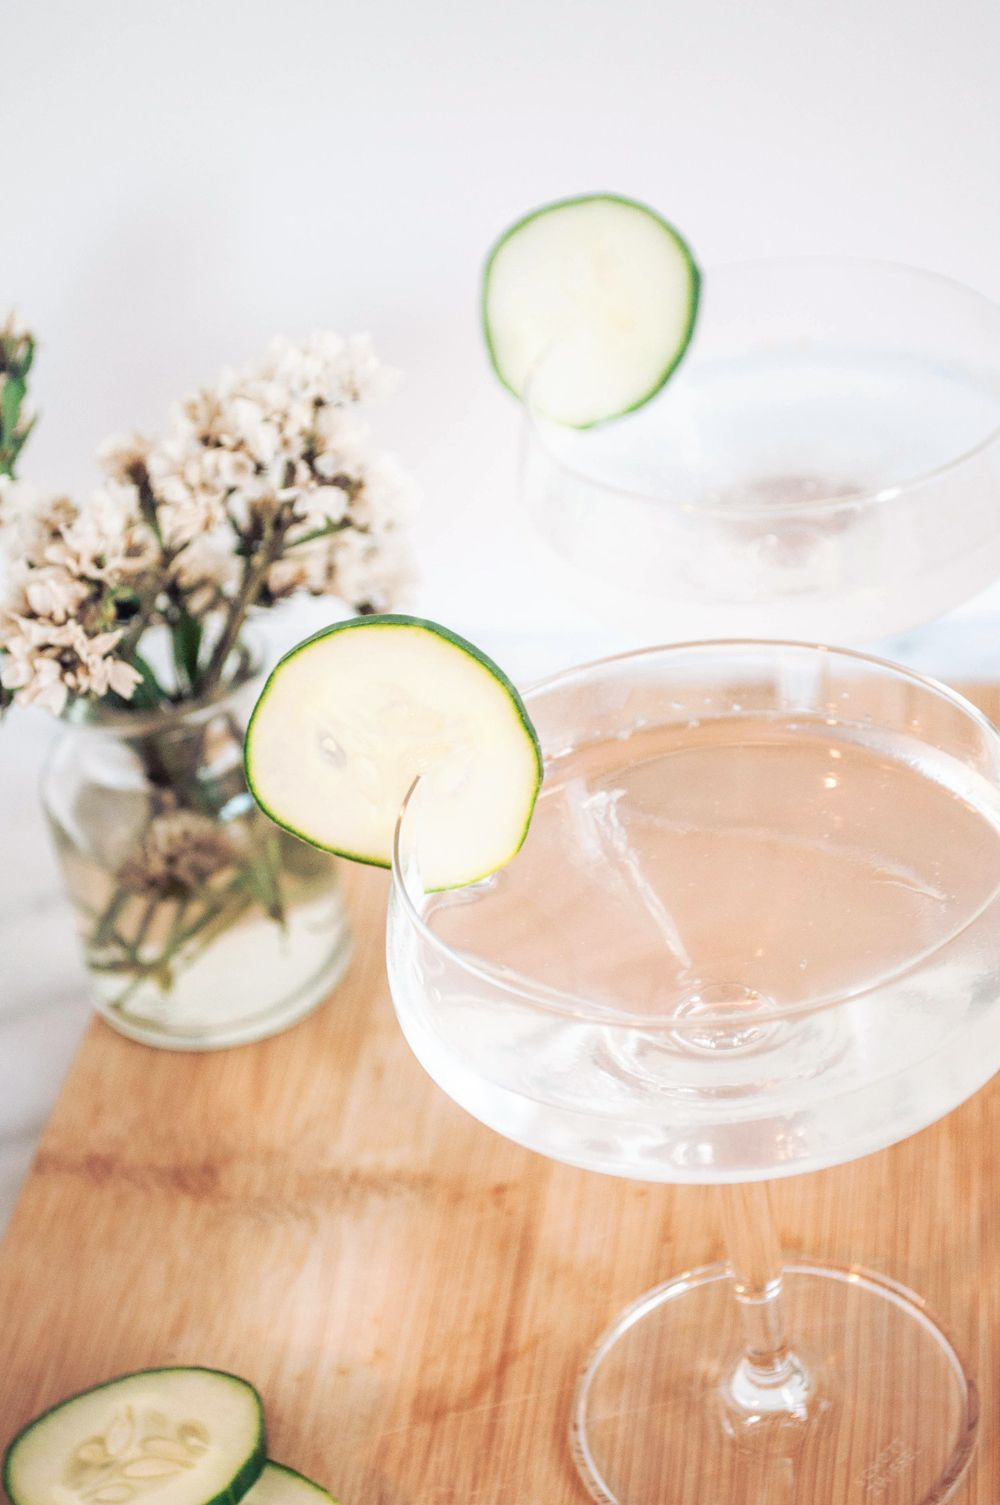 A twist on the classic gin and tonic with cucumber and rose